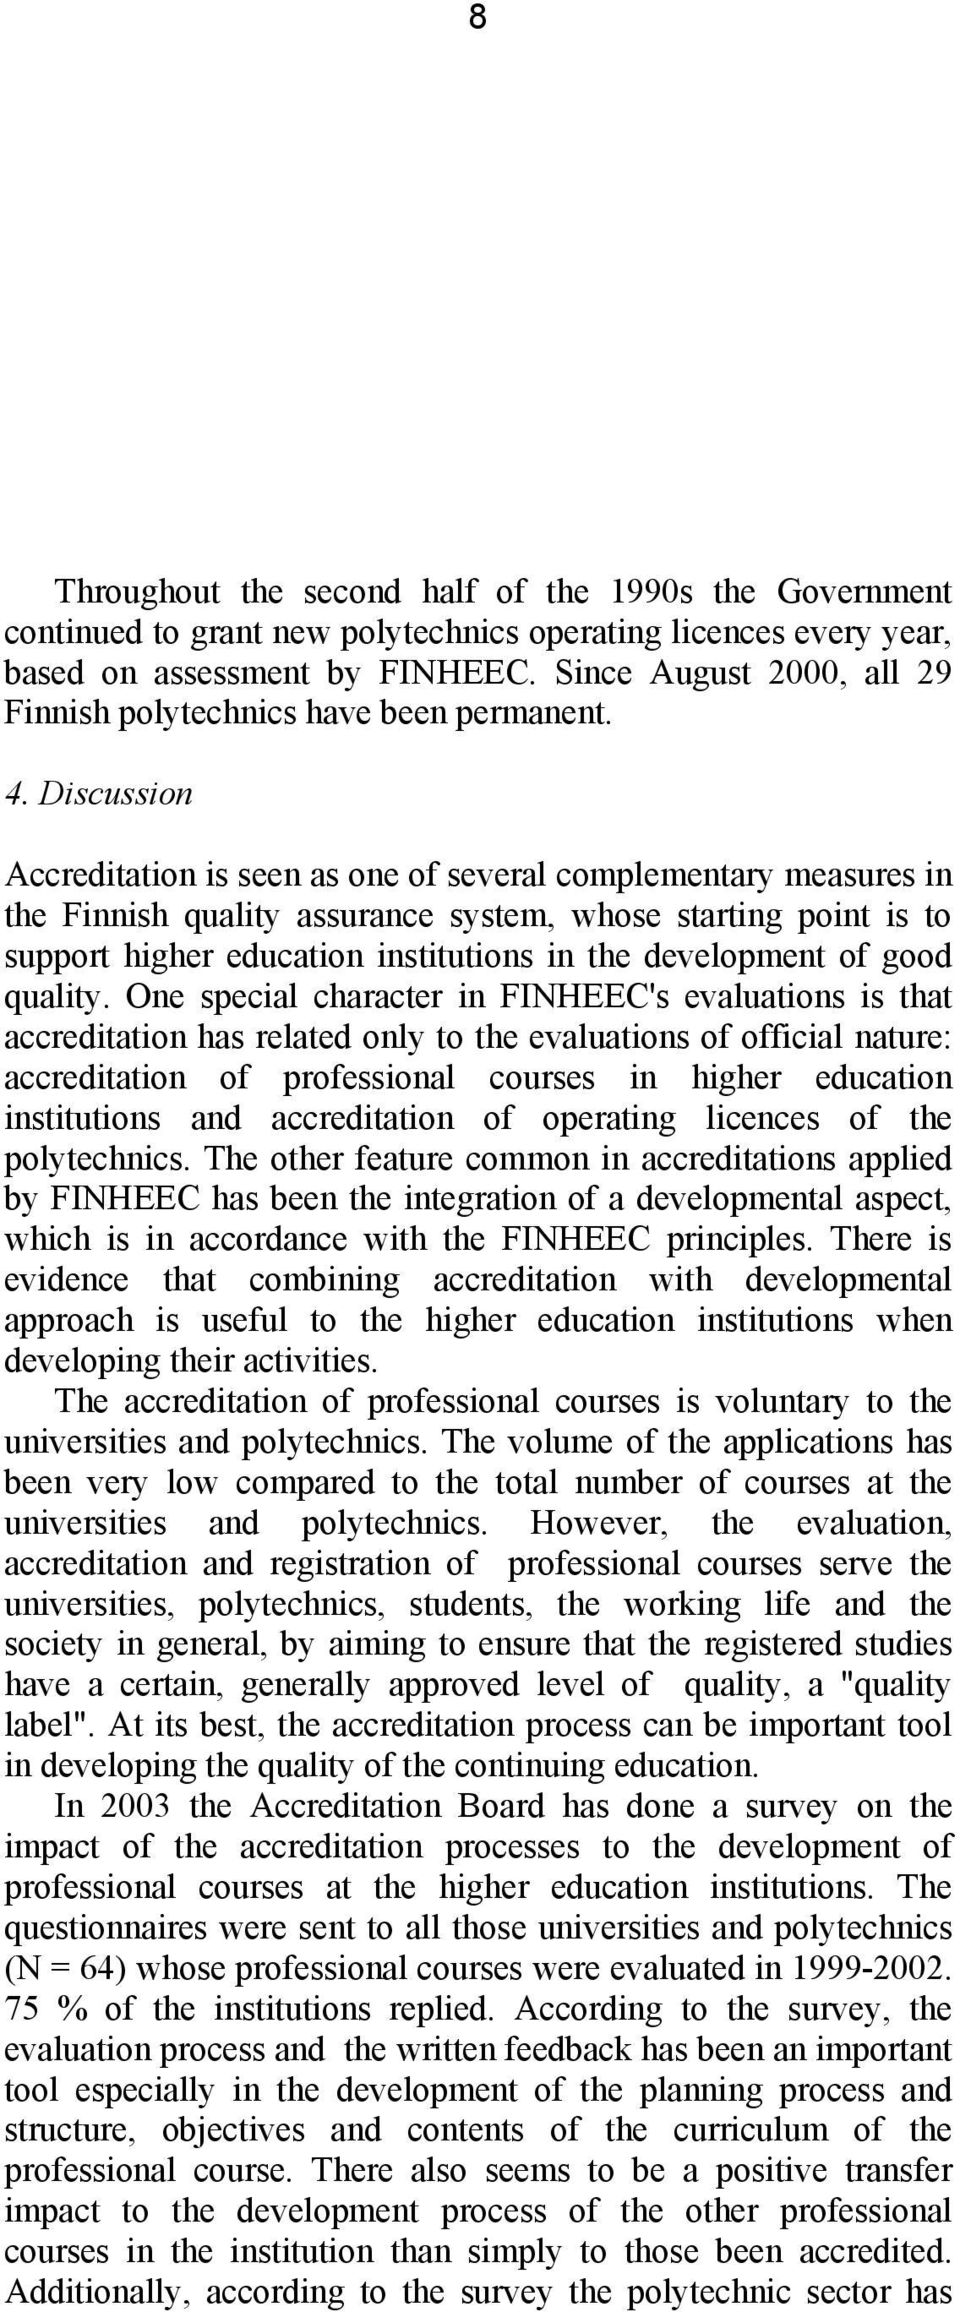 Discussion Accreditation is seen as one of several complementary measures in the Finnish quality assurance system, whose starting point is to support higher education institutions in the development